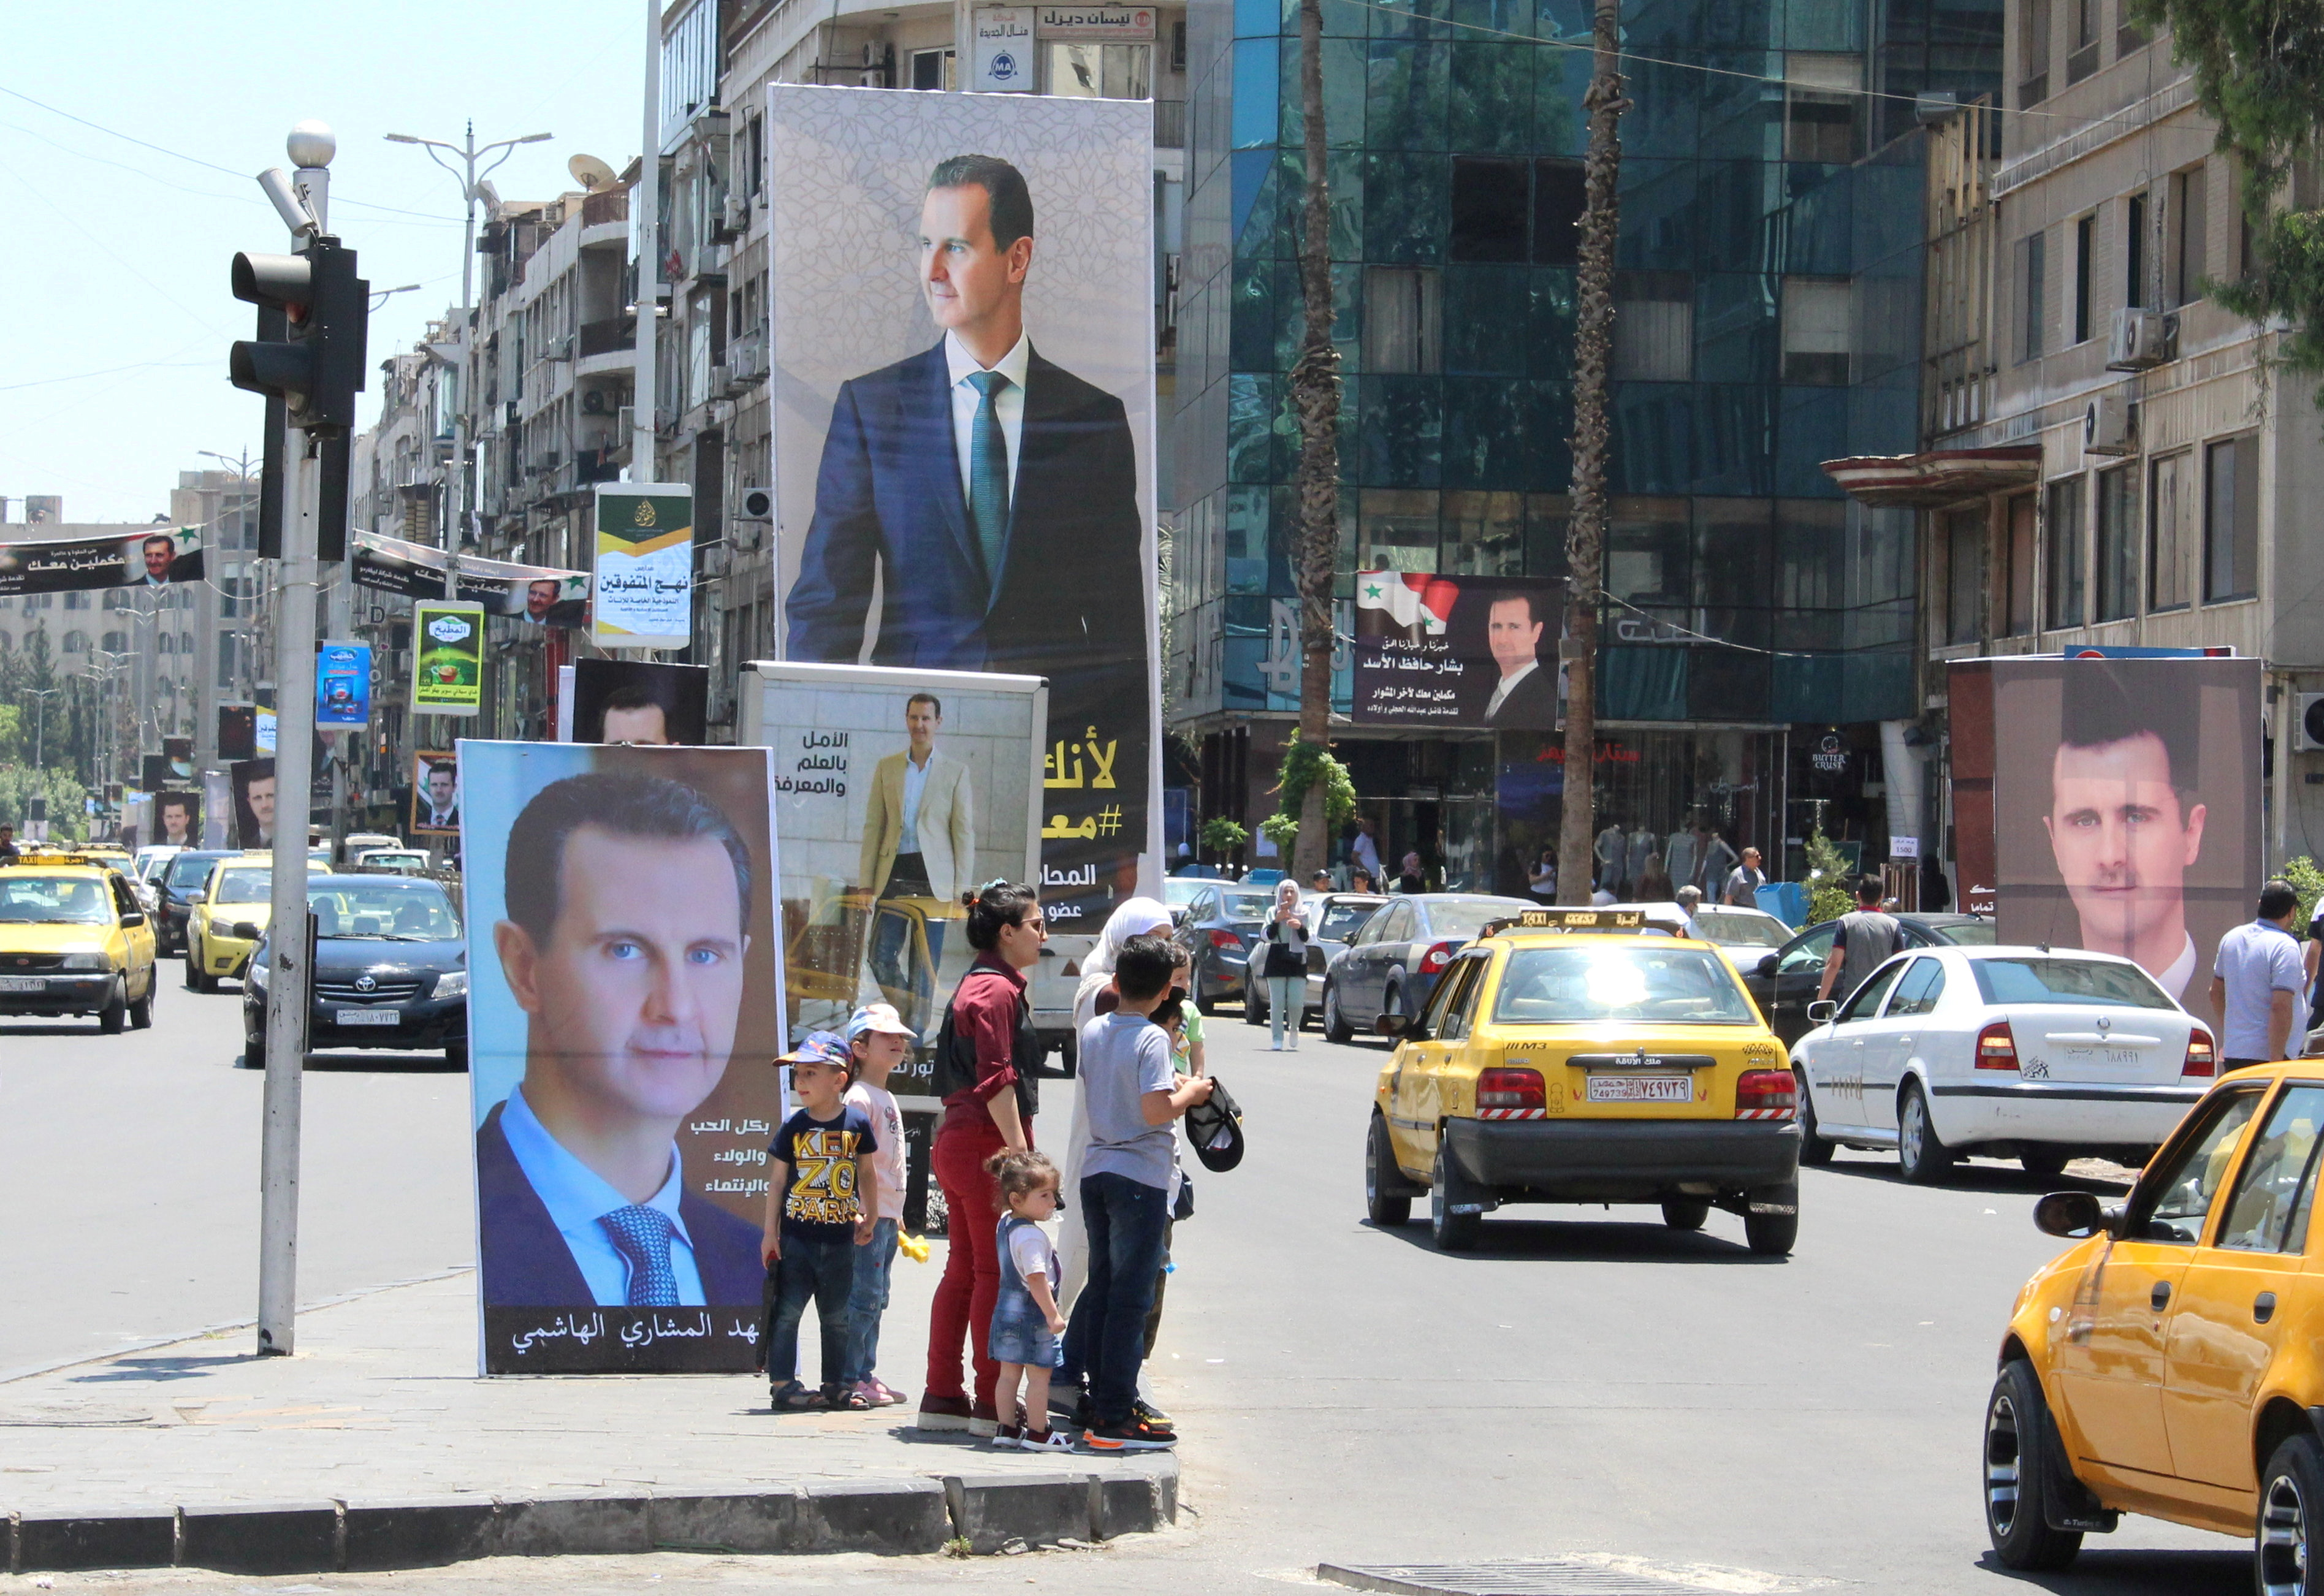 People stand near posters depicting Syria's President Bashar al-Assad, ahead of the May 26 presidential election, in Damascus, Syria May 18, 2021.  REUTERS/Firas Makdesi/File Photo